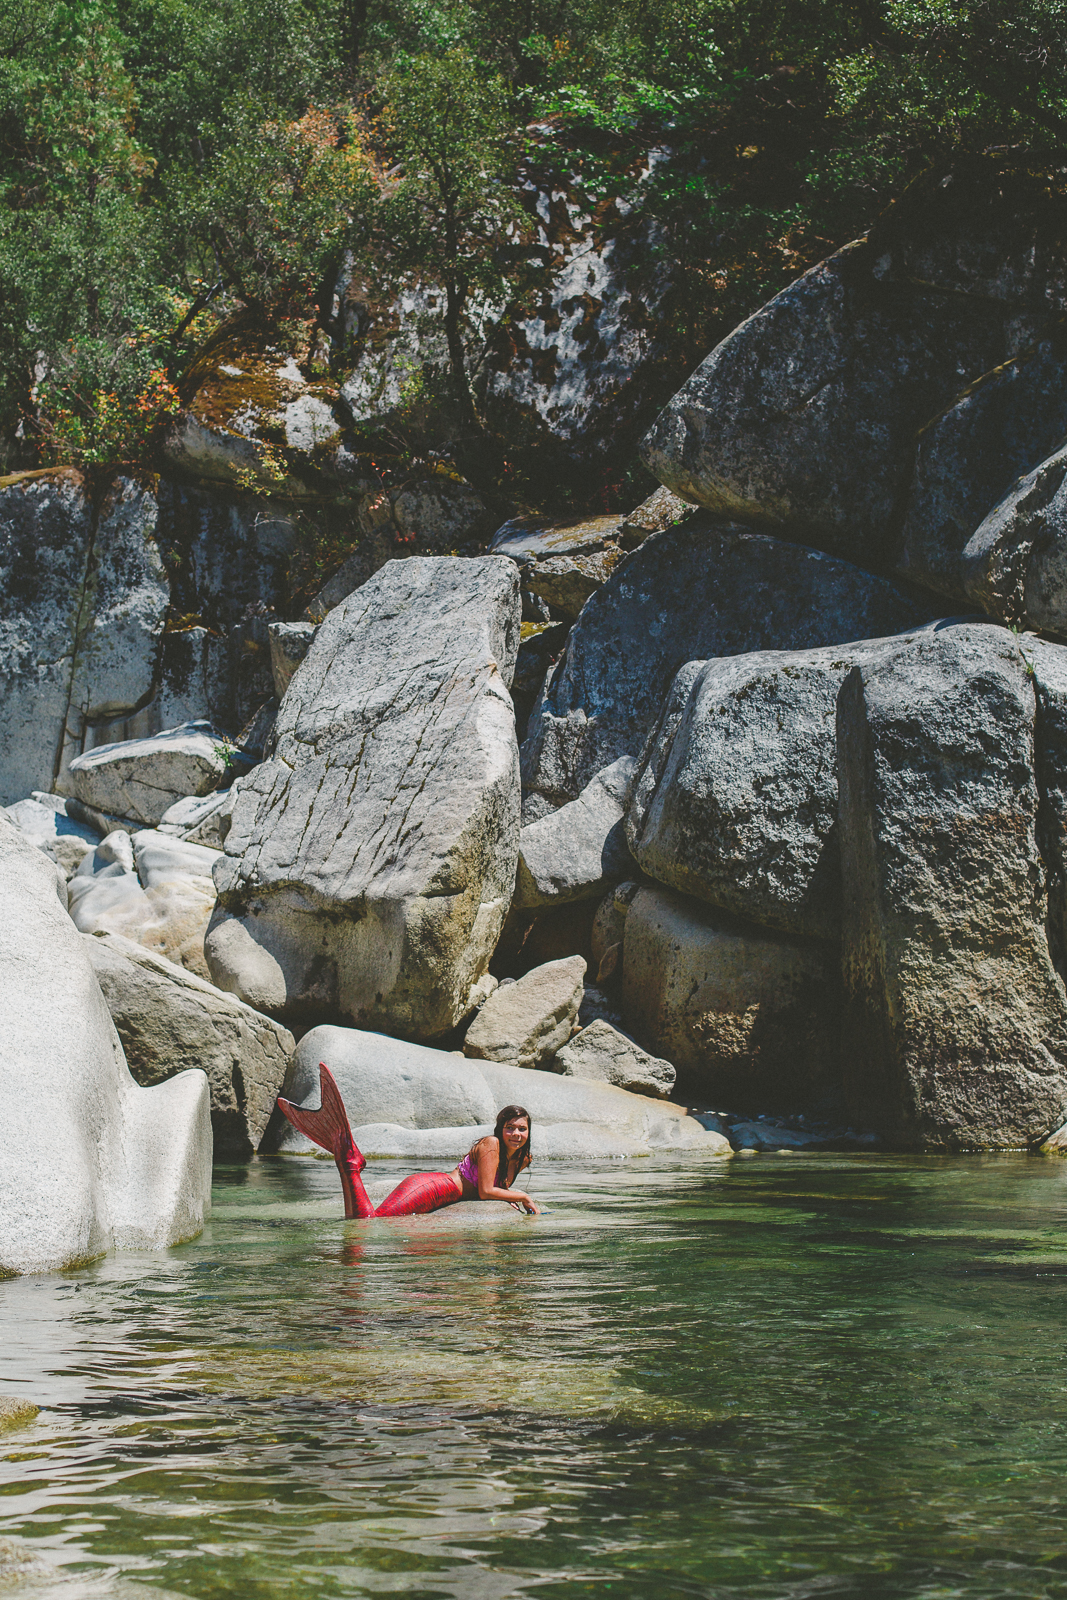 Mermaid loves nature at the Yuba River